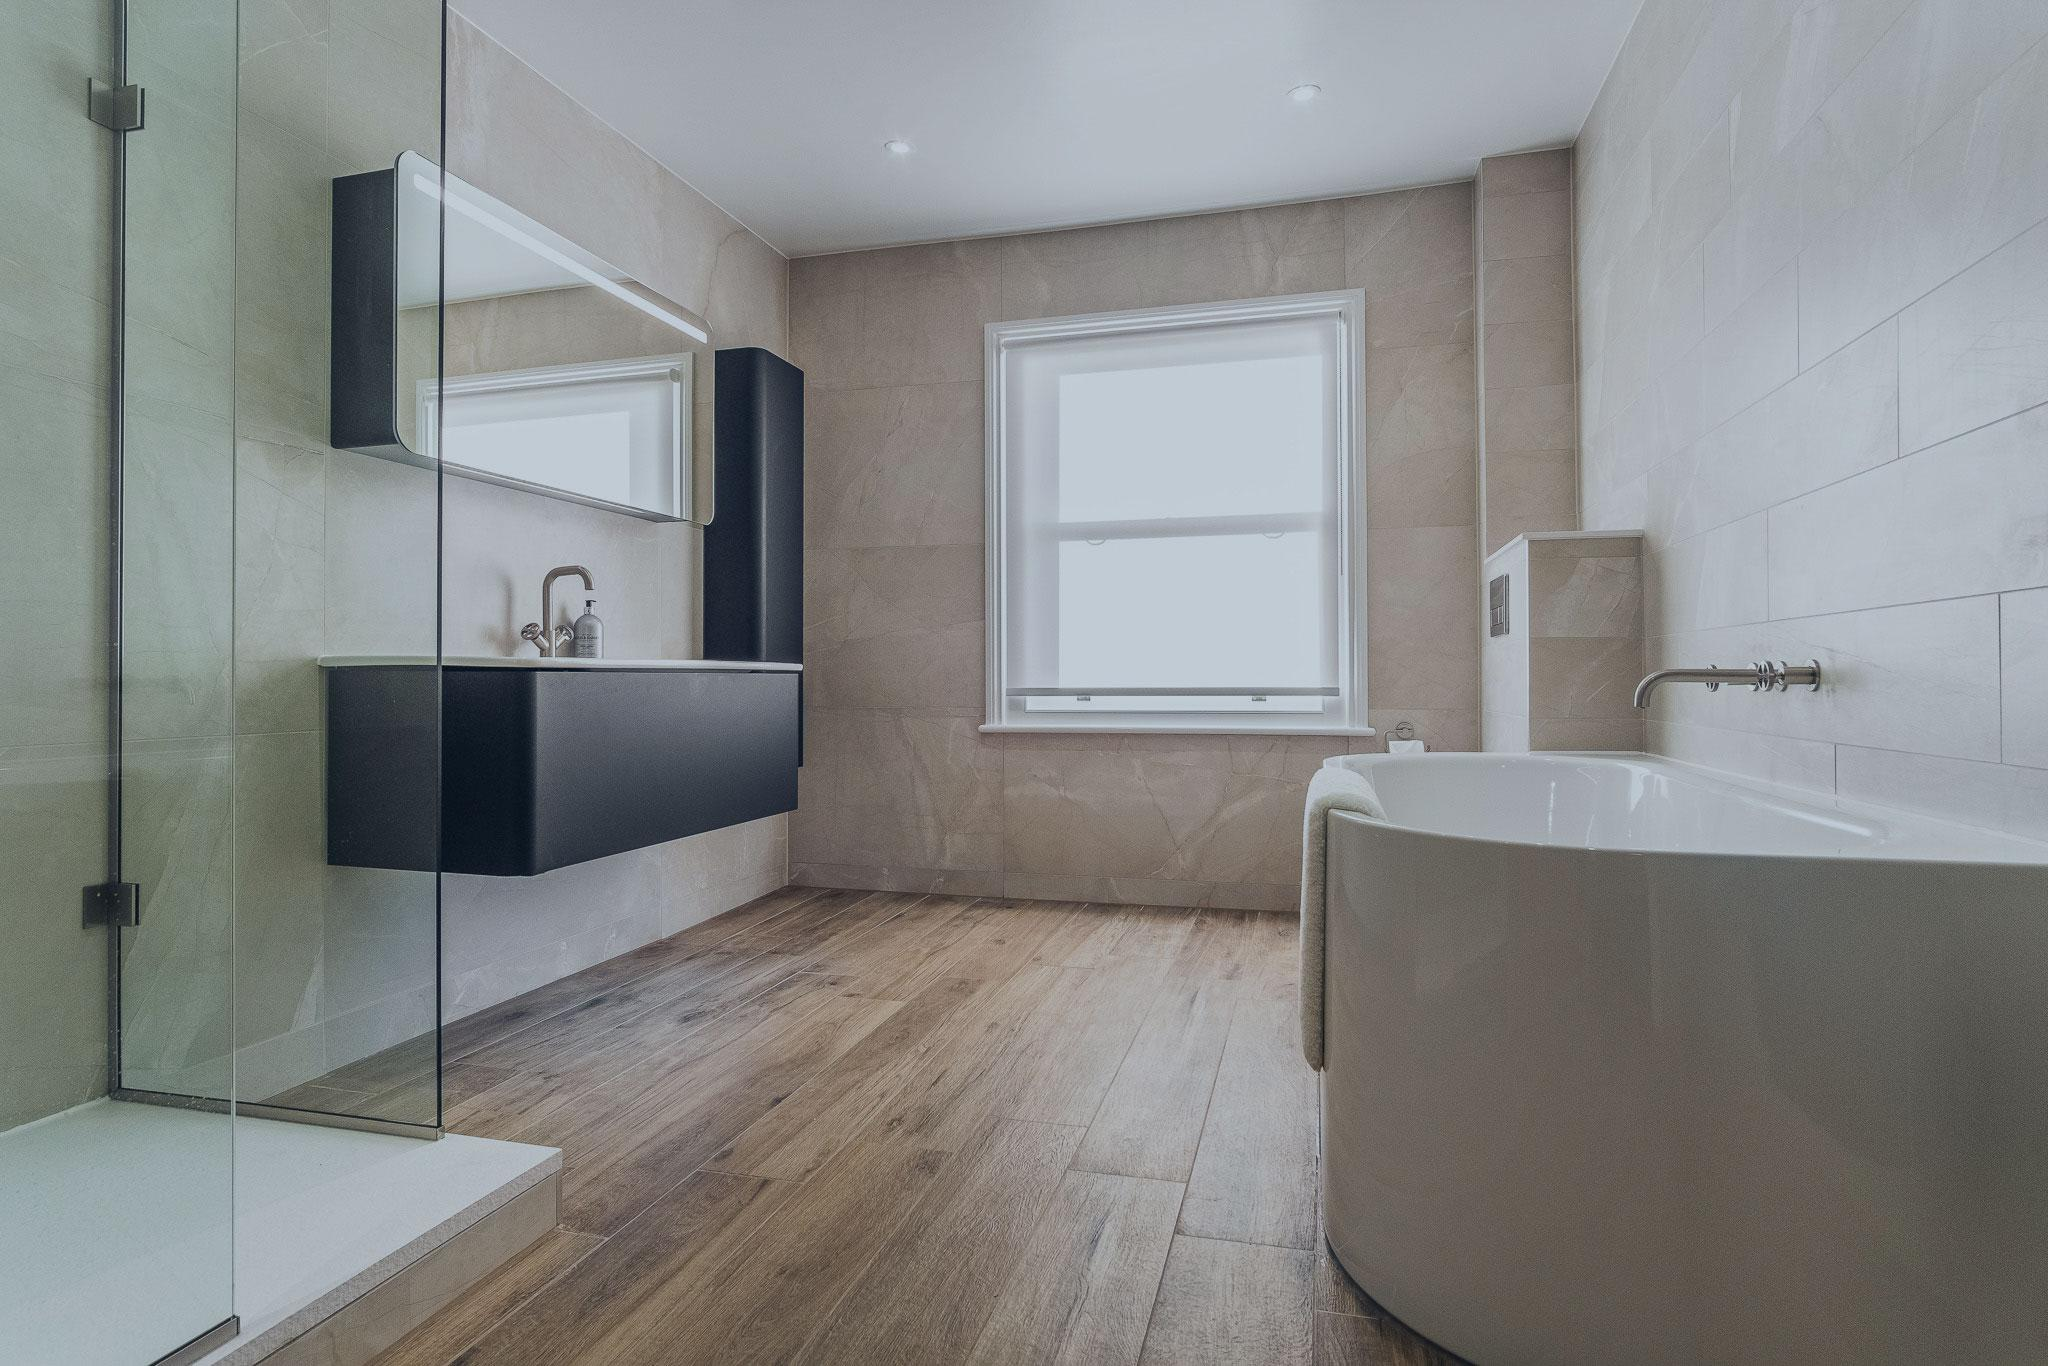 Steel bath, black fitted furniture with LED mirrored cabinet, industrial taps, walk in shower and wood effect bathroom floor